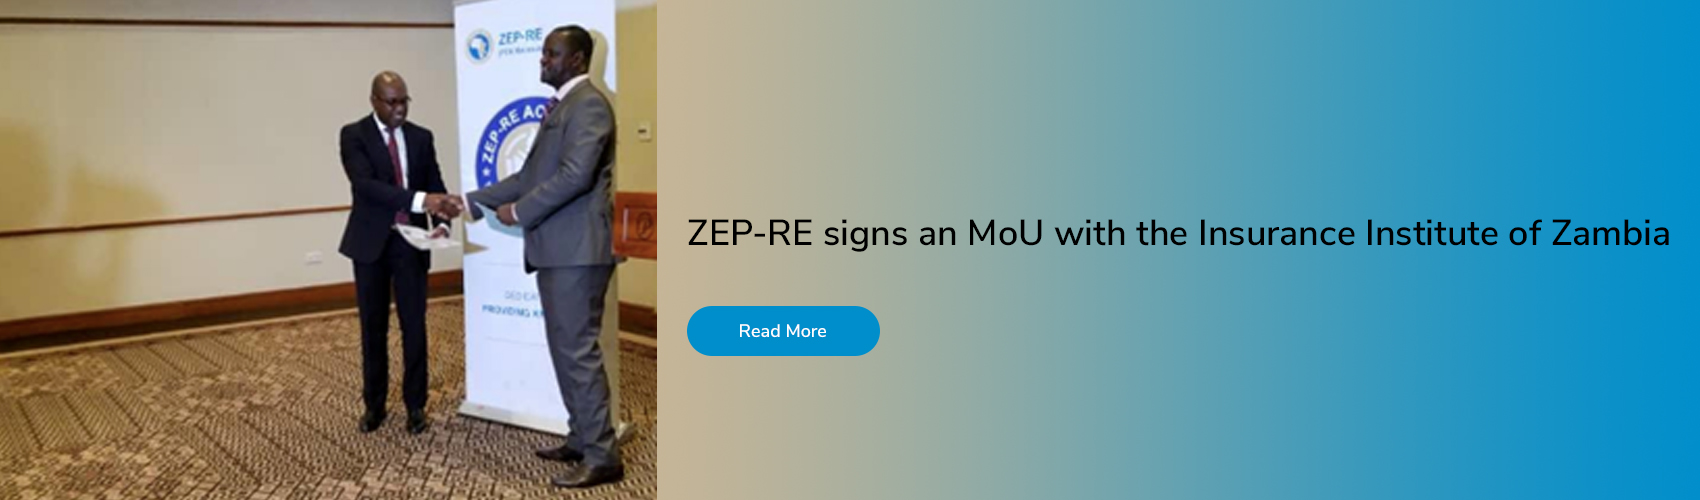 ZEP-RE signs an MoU with the Insurance Institute of Zambia